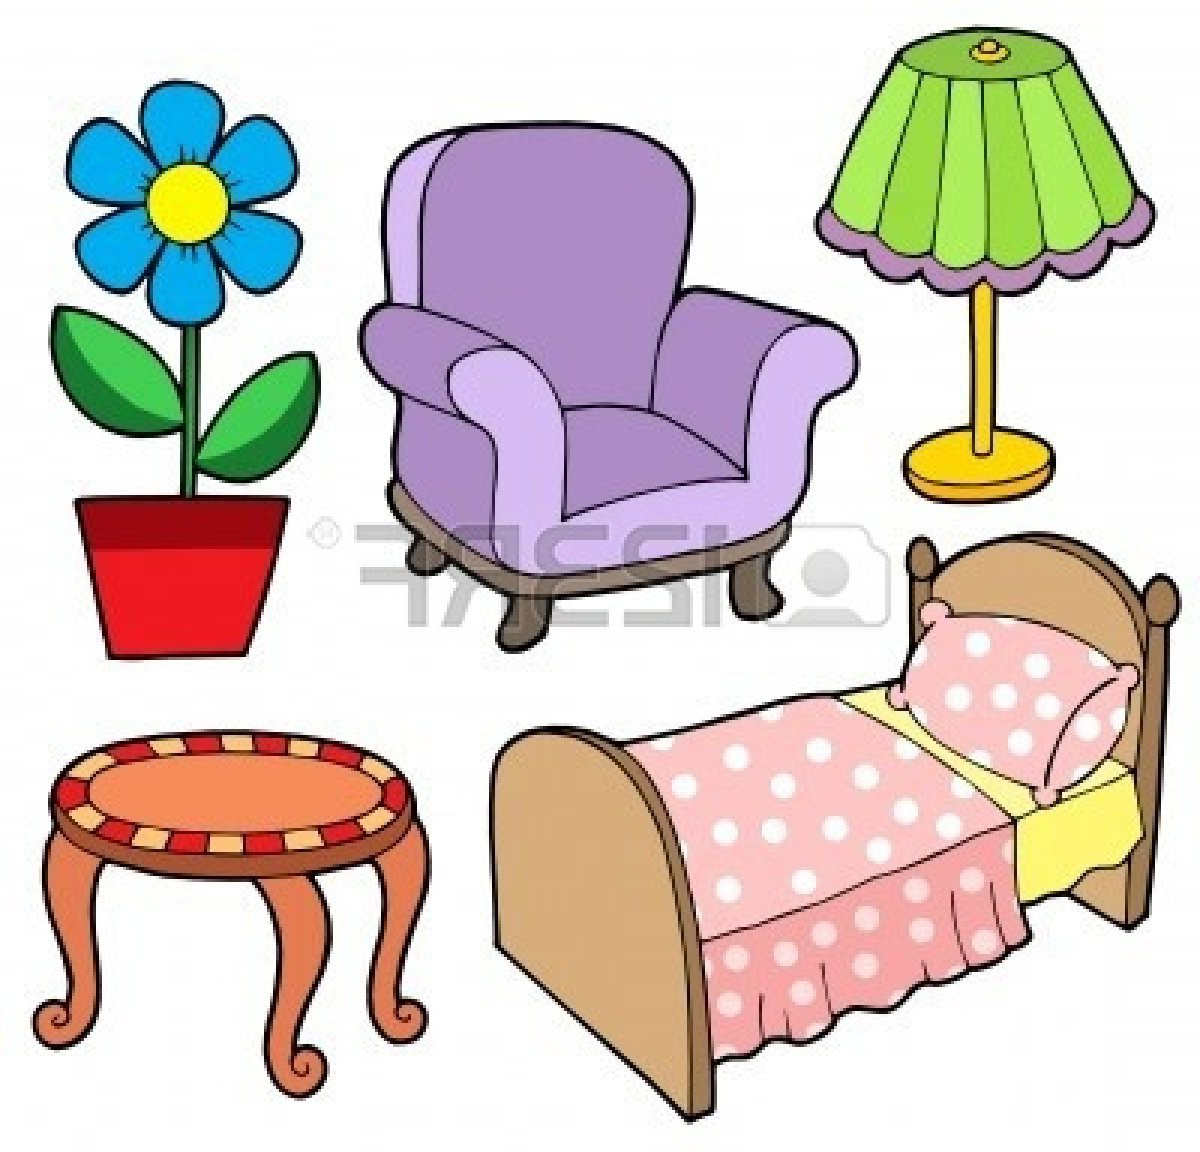 Furniture clipart things Clip Bedroom Things furniture bedroom